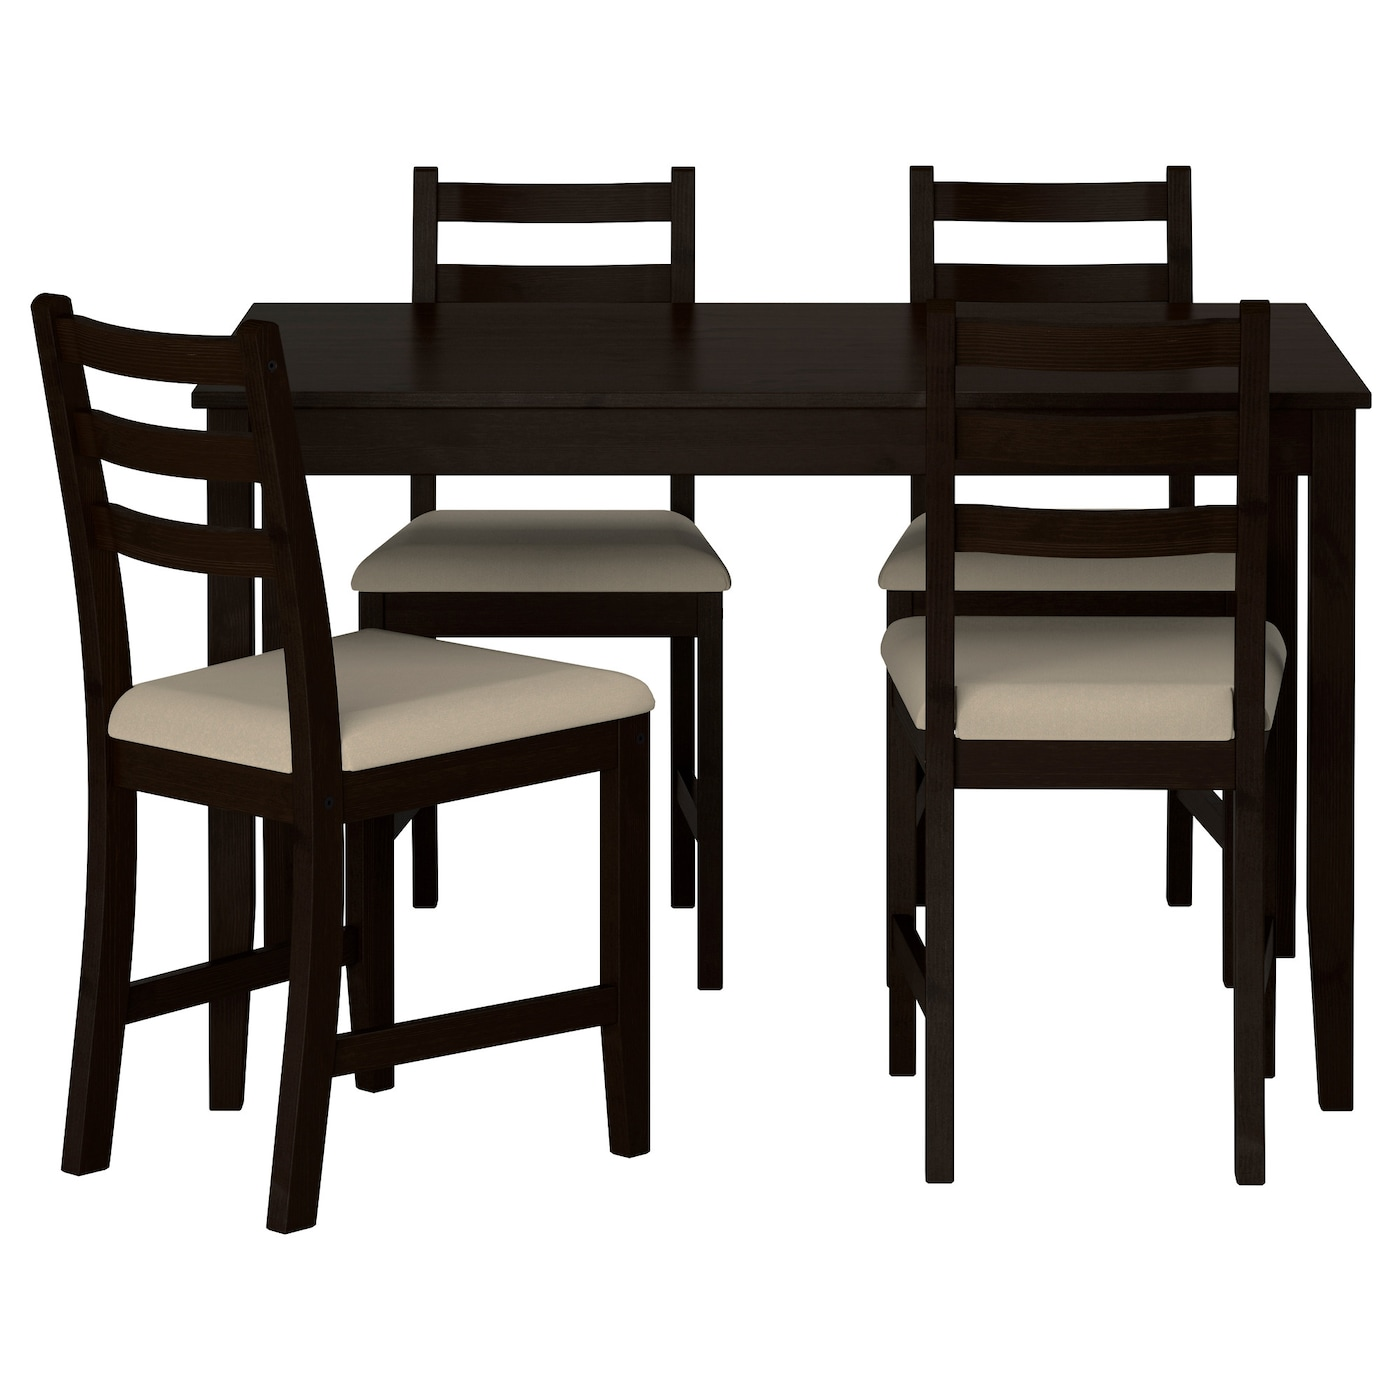 Lerhamn table and 4 chairs black brown ramna beige 118x74 for Black kitchen table set